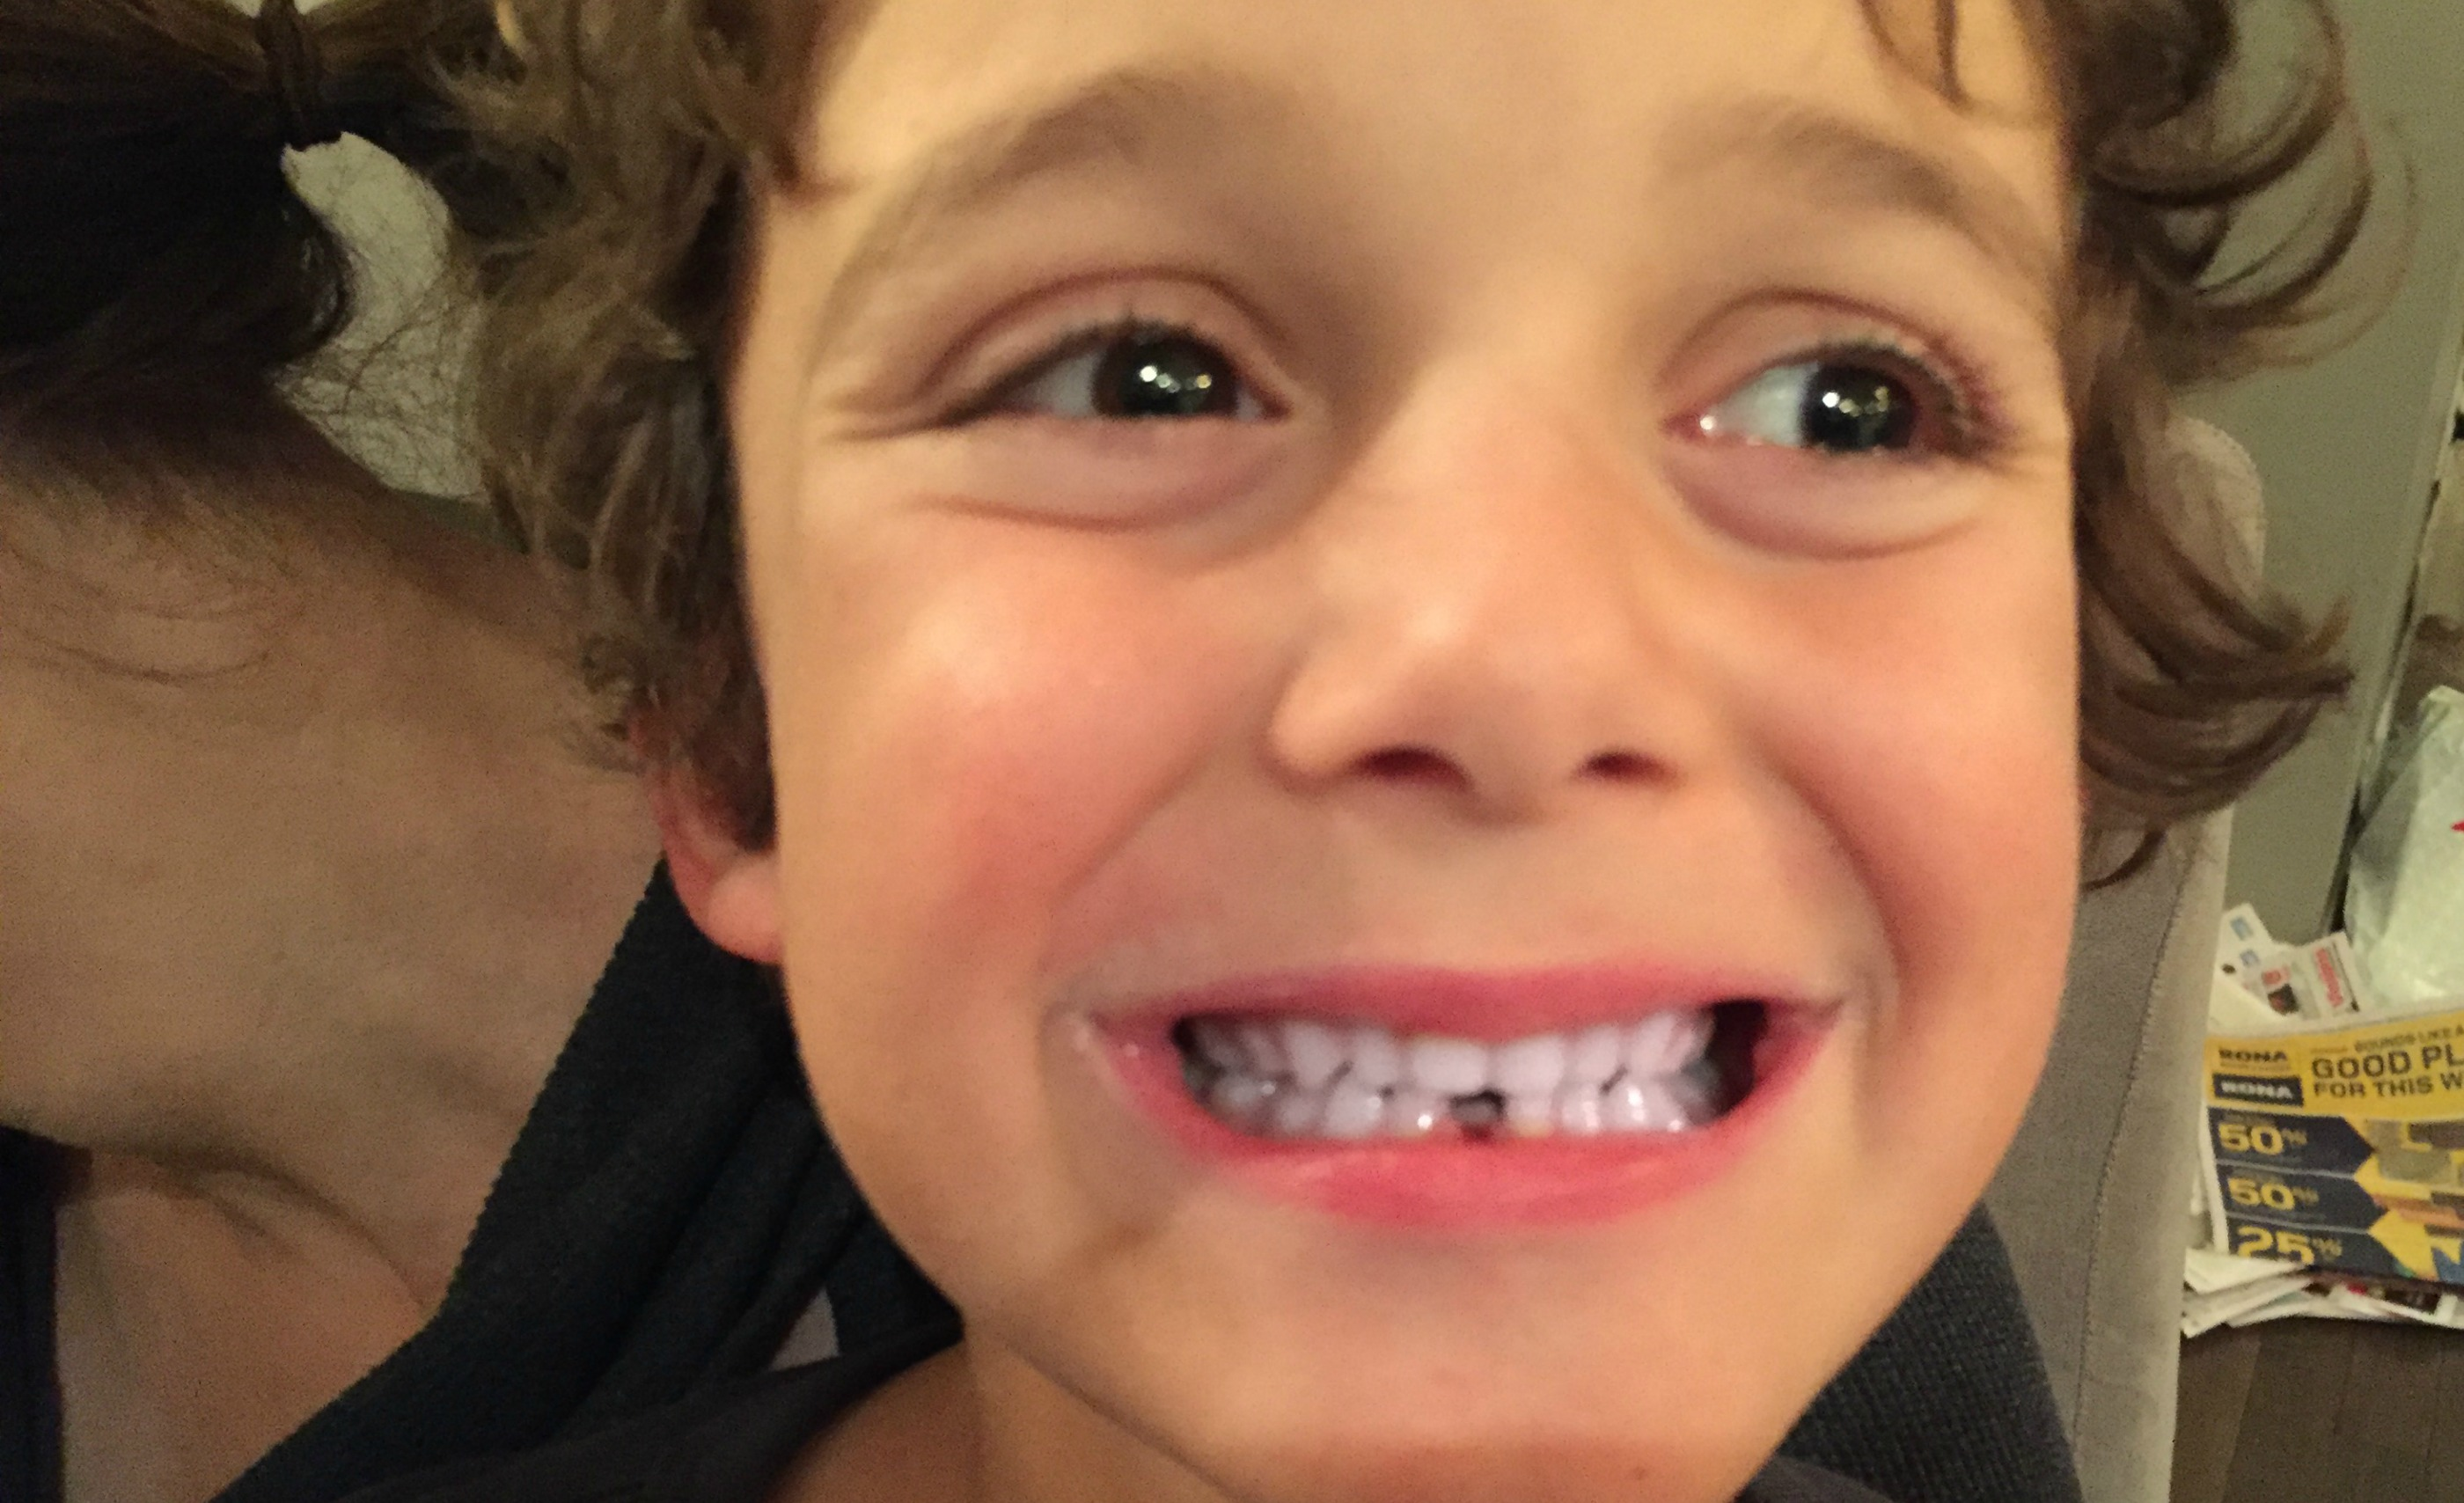 charlie lost his tooth